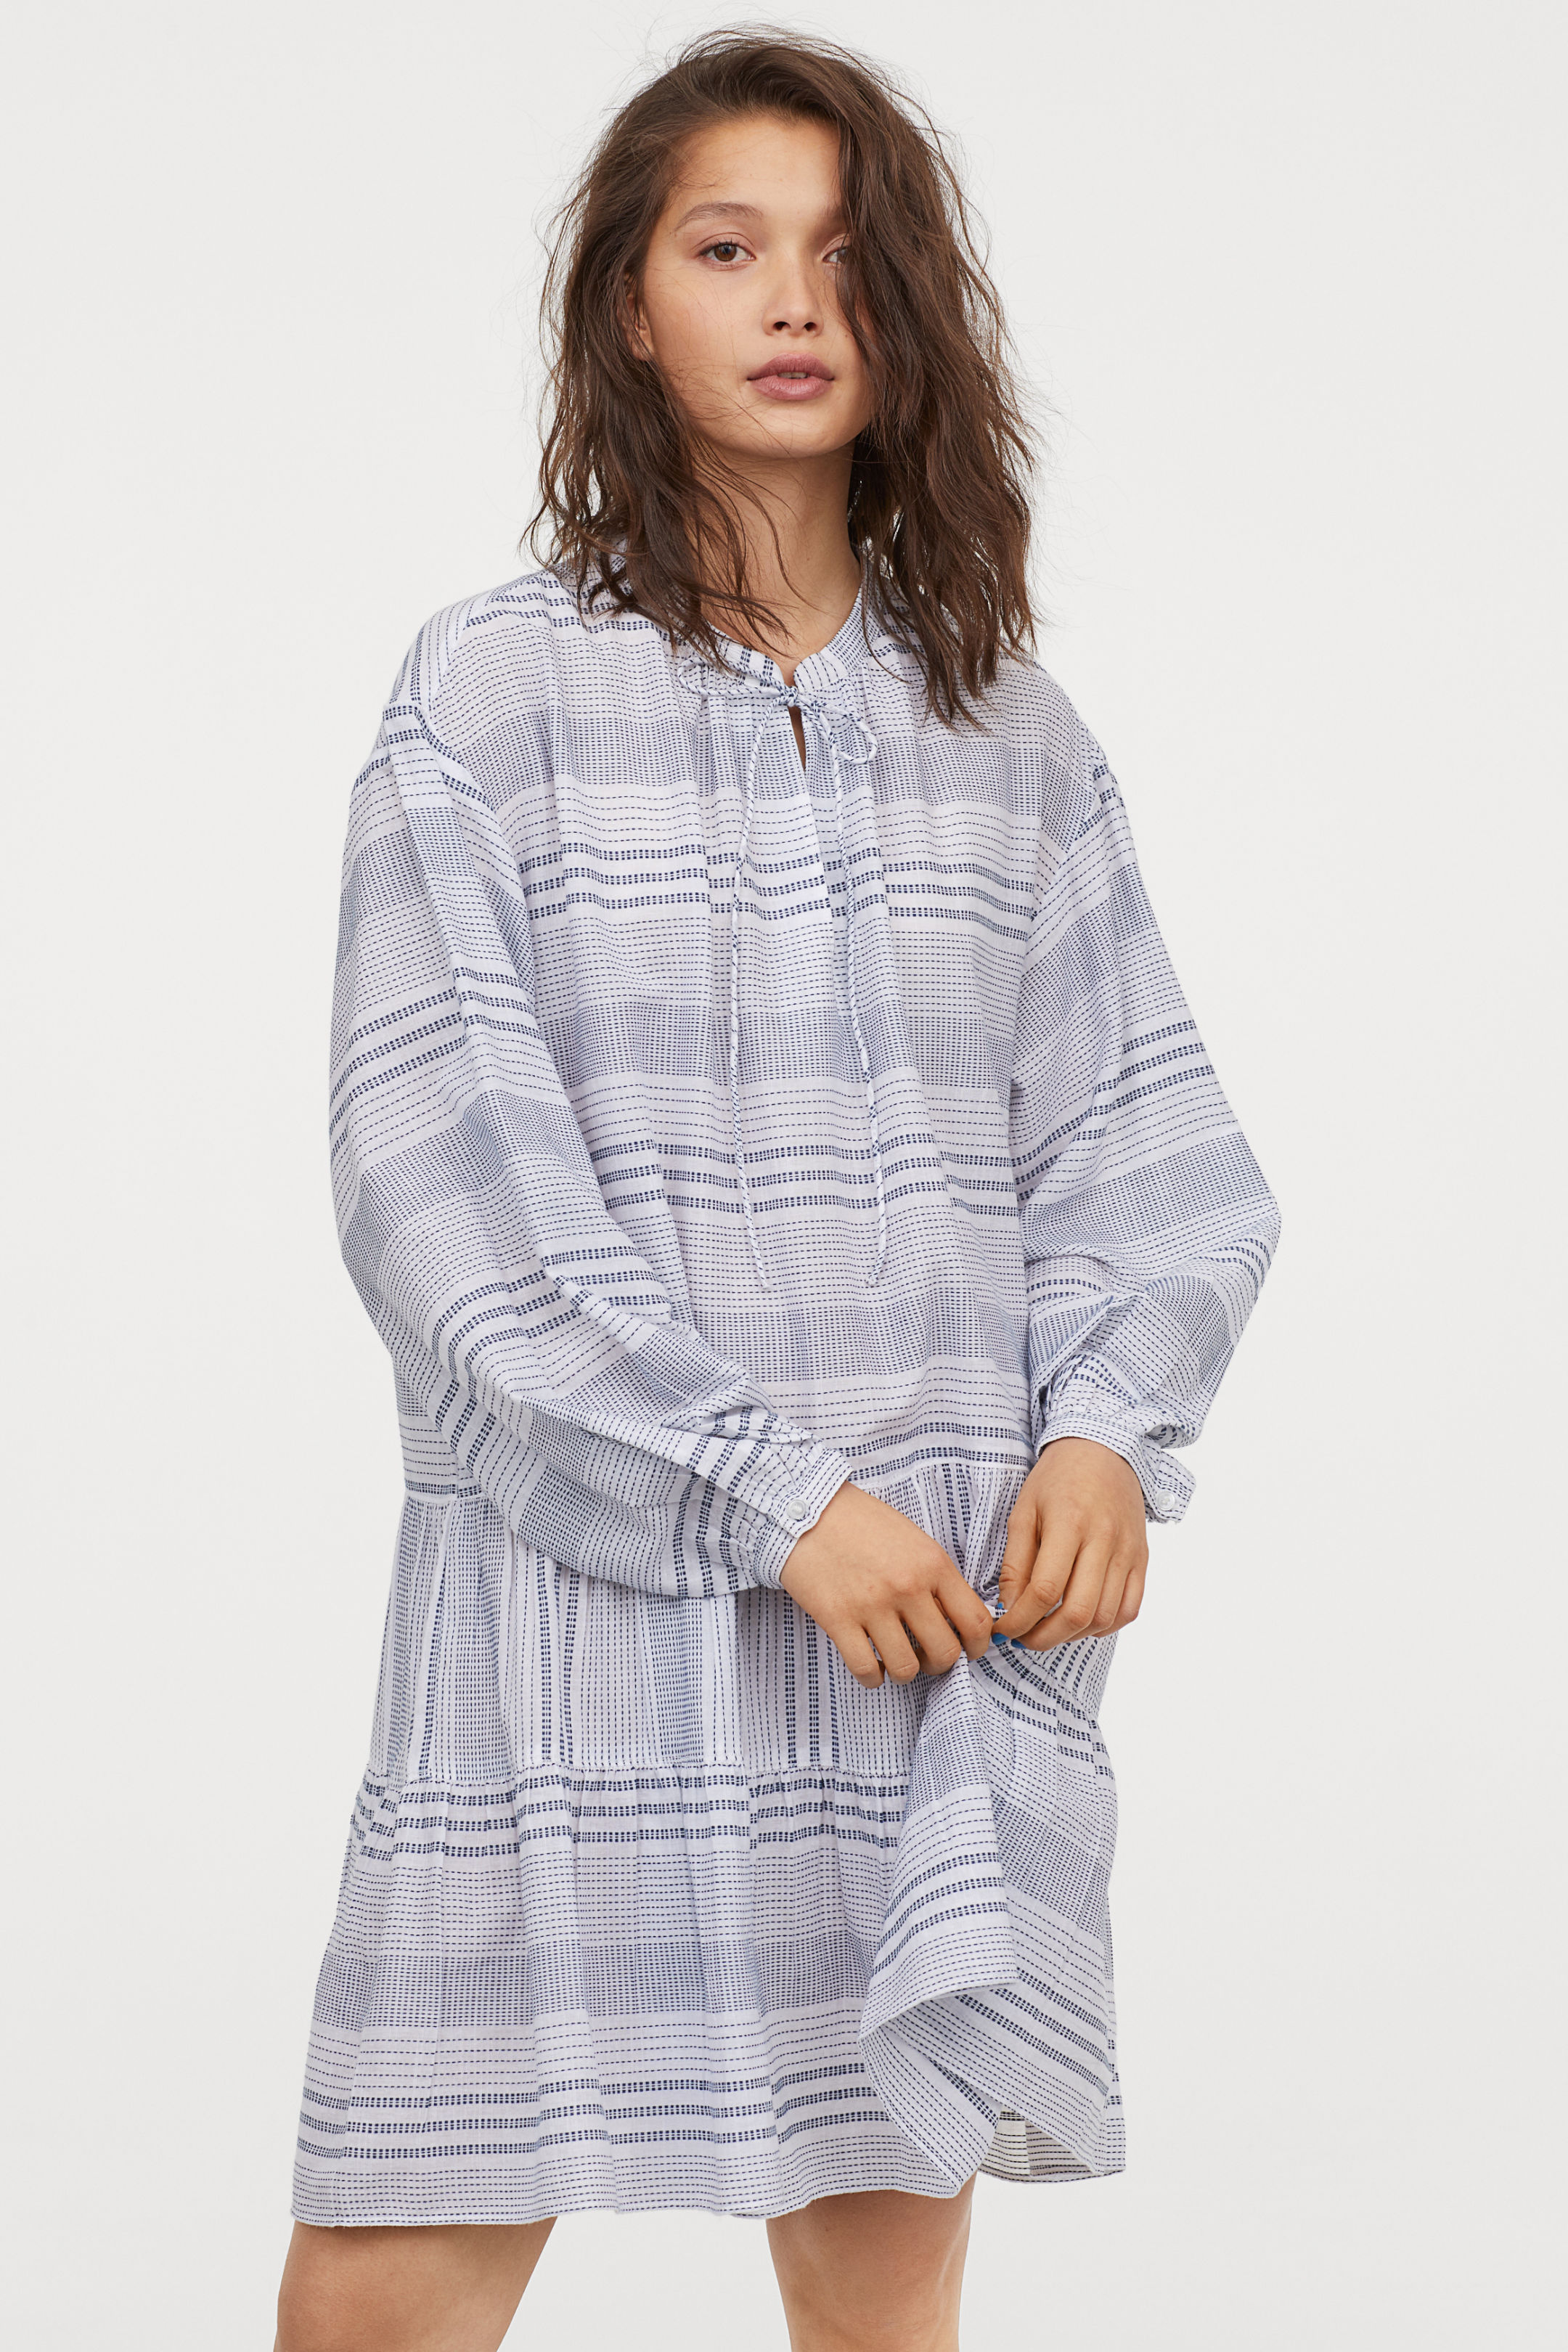 H&M Cotton Dress with Tiered Skirt